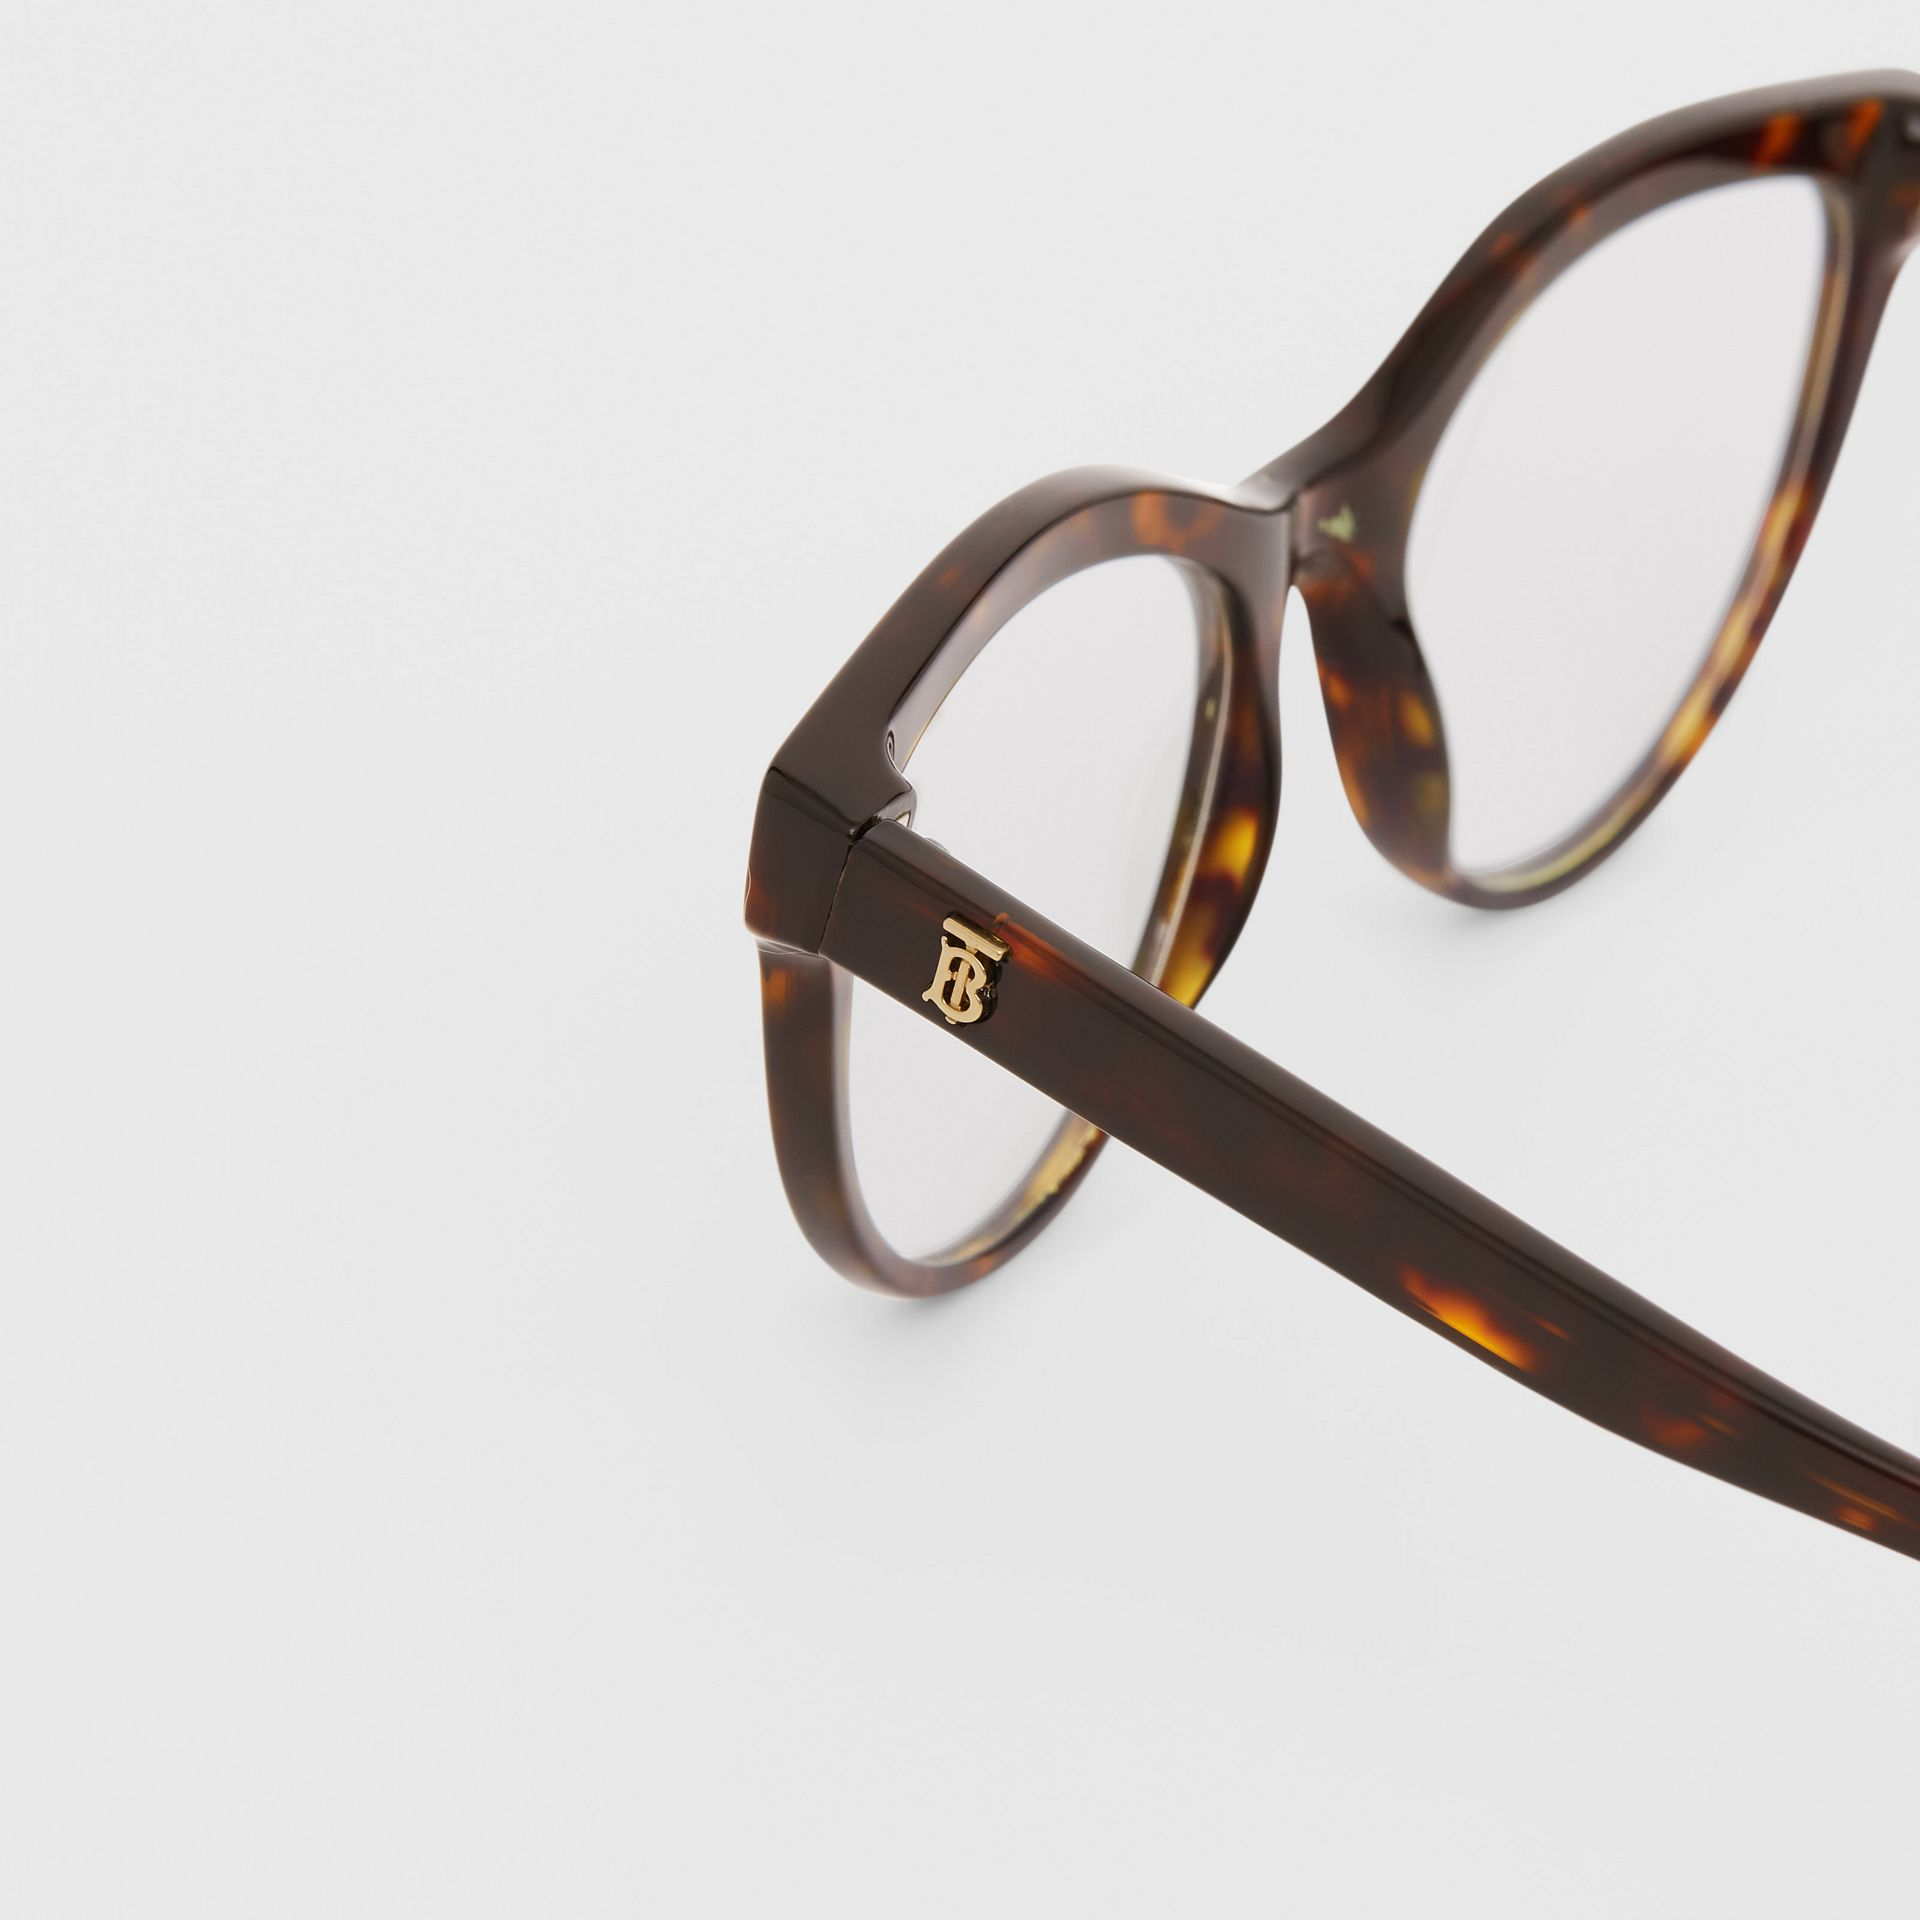 Monogram Motif Cat-eye Optical Frames in Tortoiseshell | Burberry United States - gallery image 1